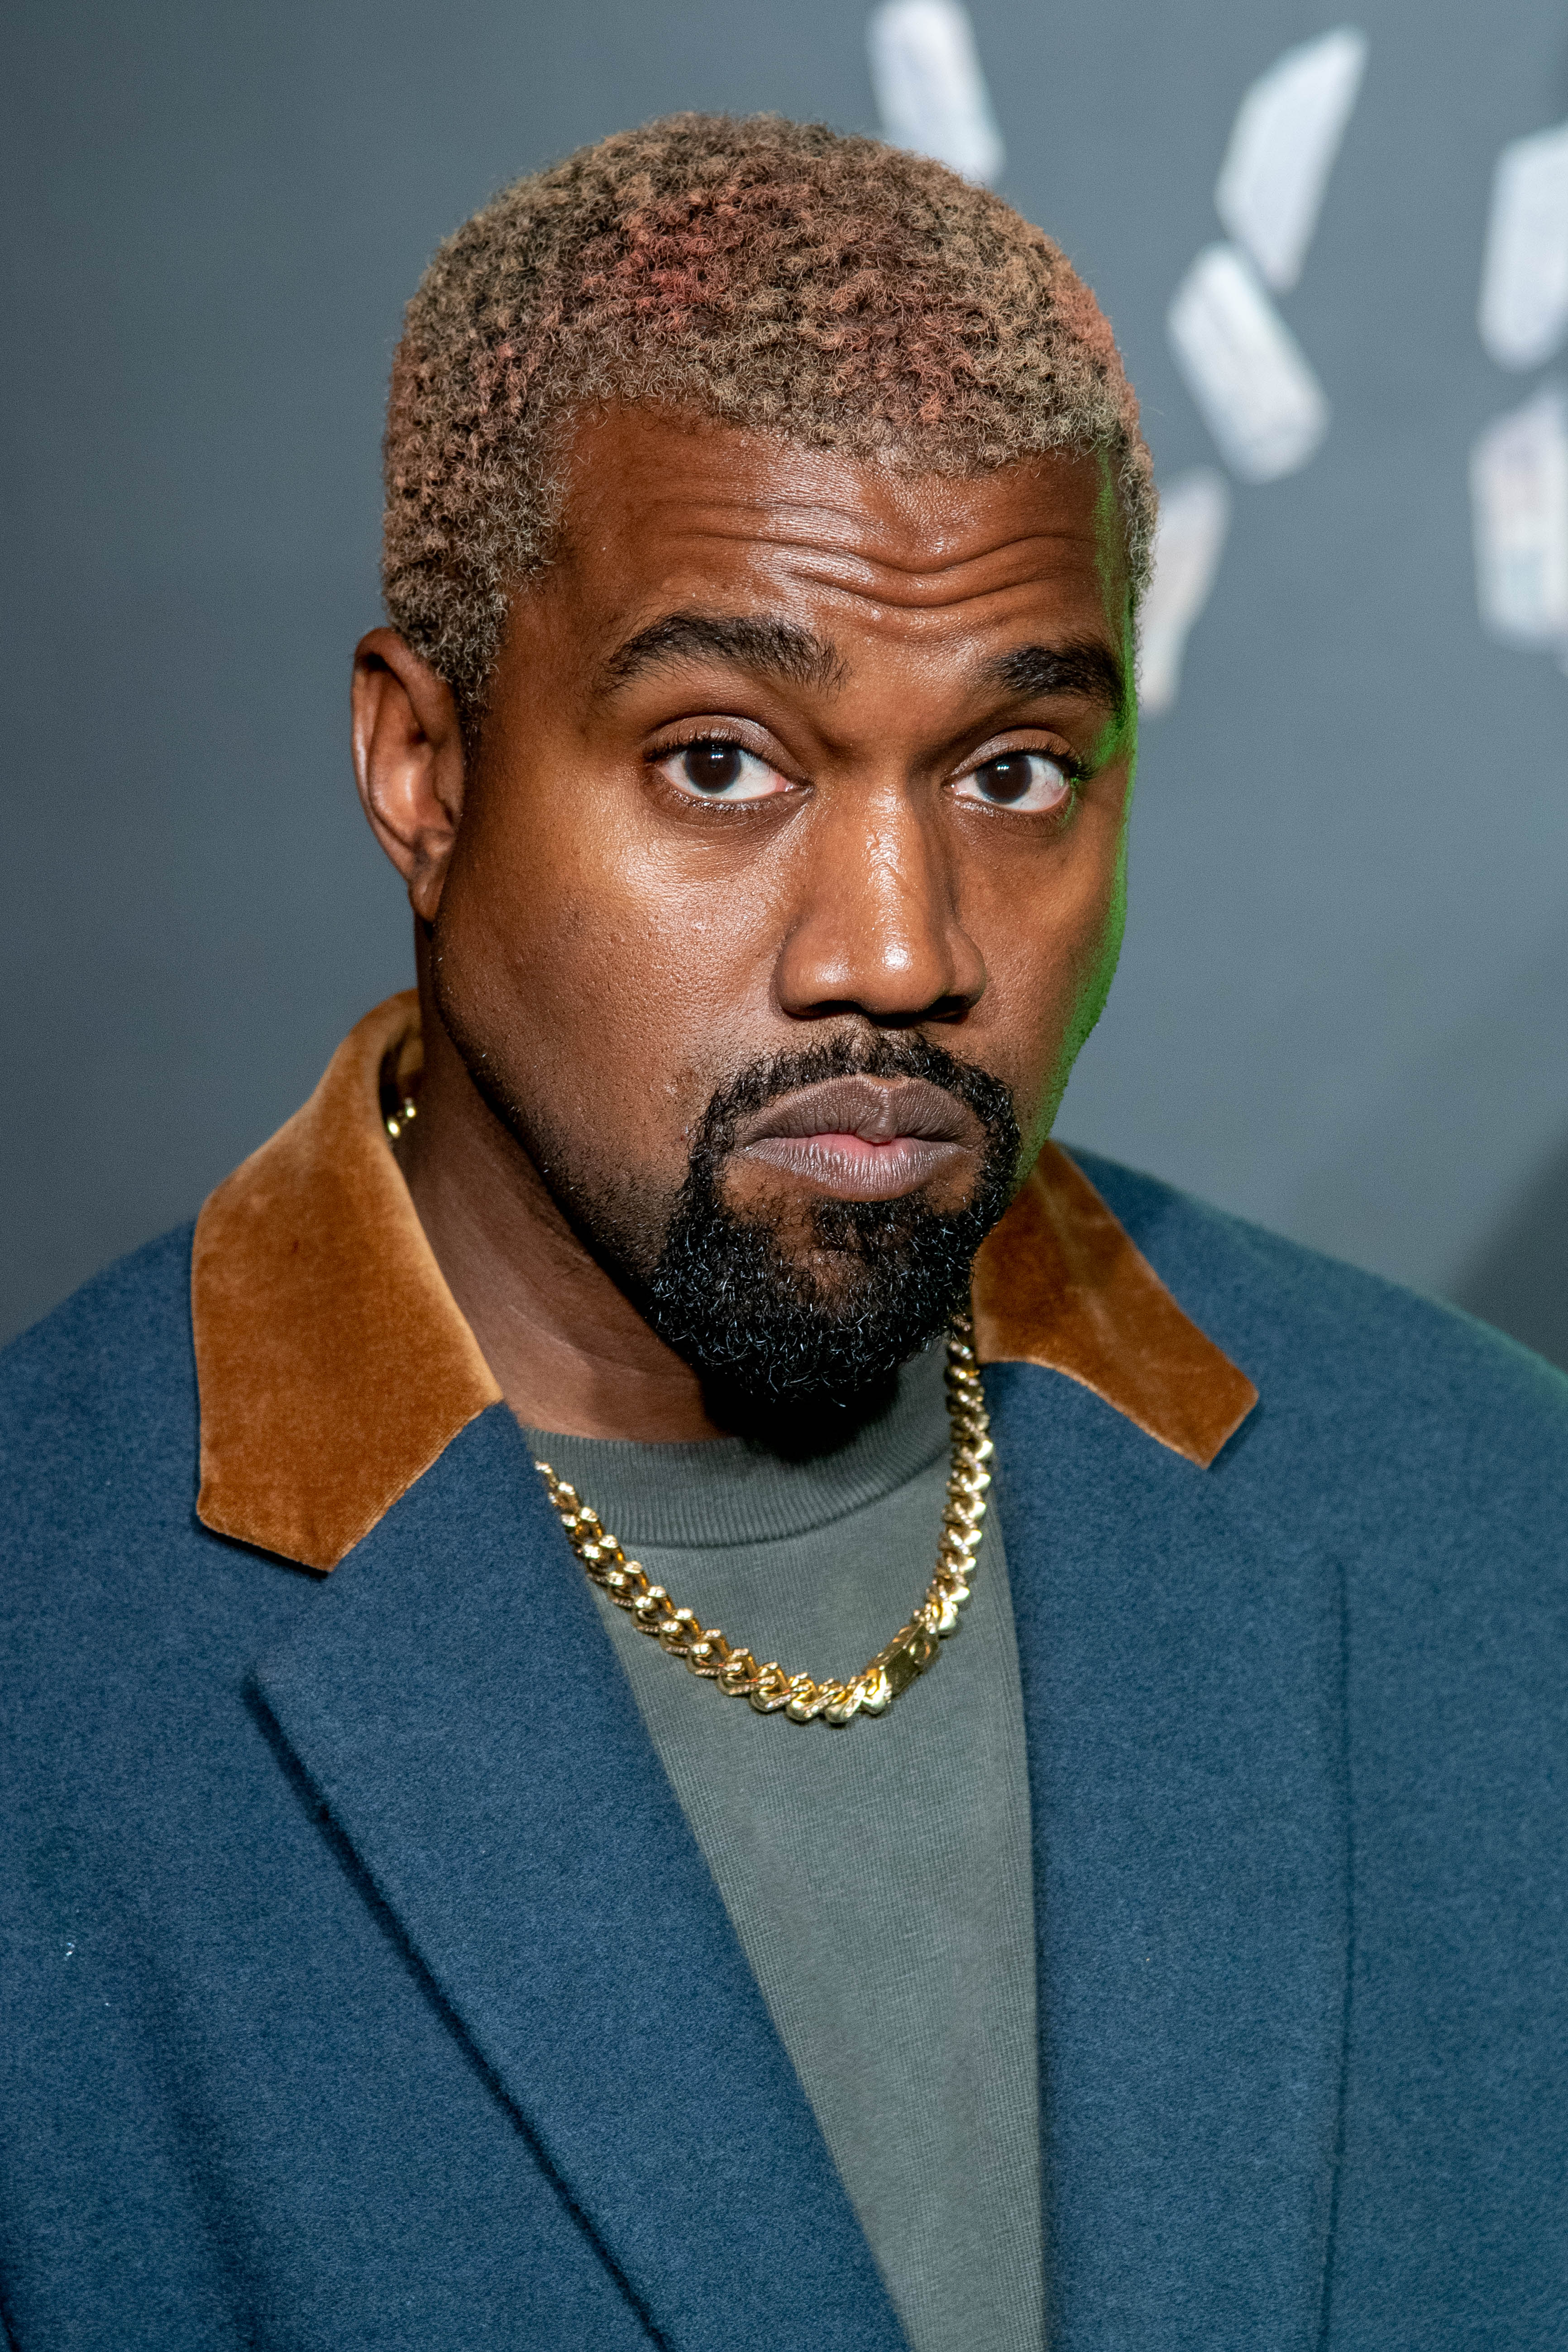 Kanye West sued by his music publisher after he claims his contract is 'servitude'